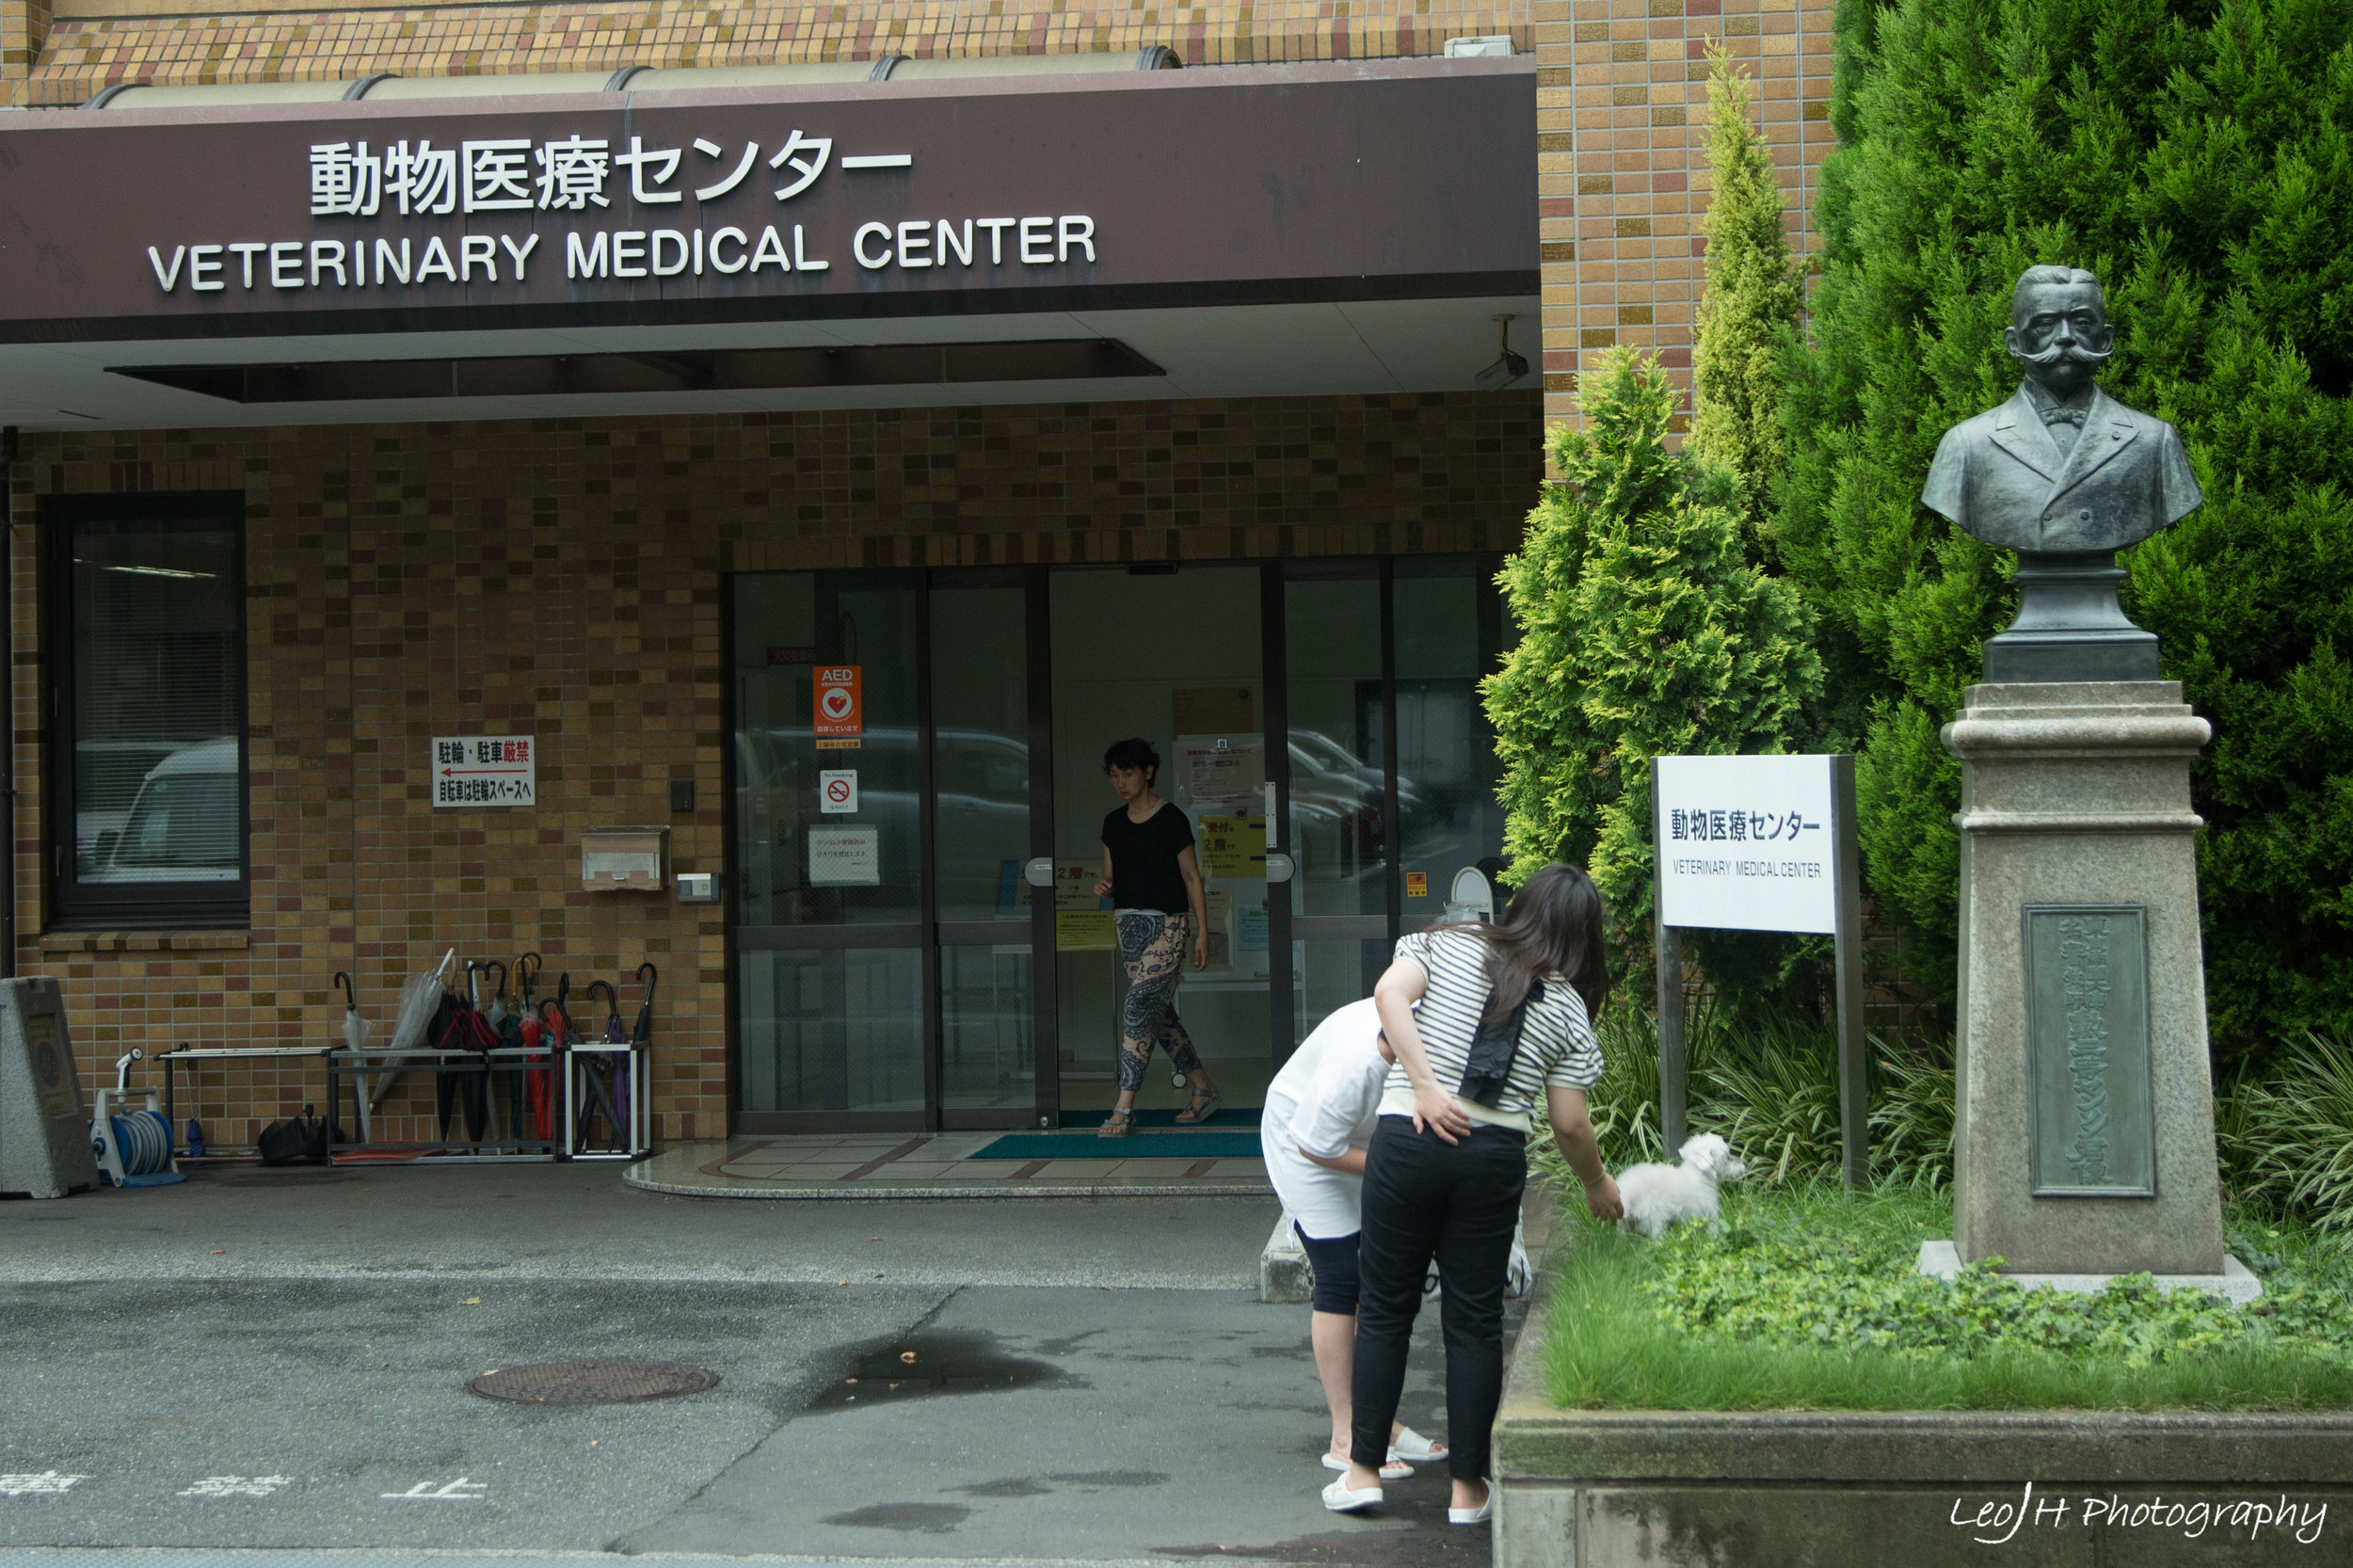 Todai's Veterinary Medical Center. Looks like the public actually brings animals here for treatment